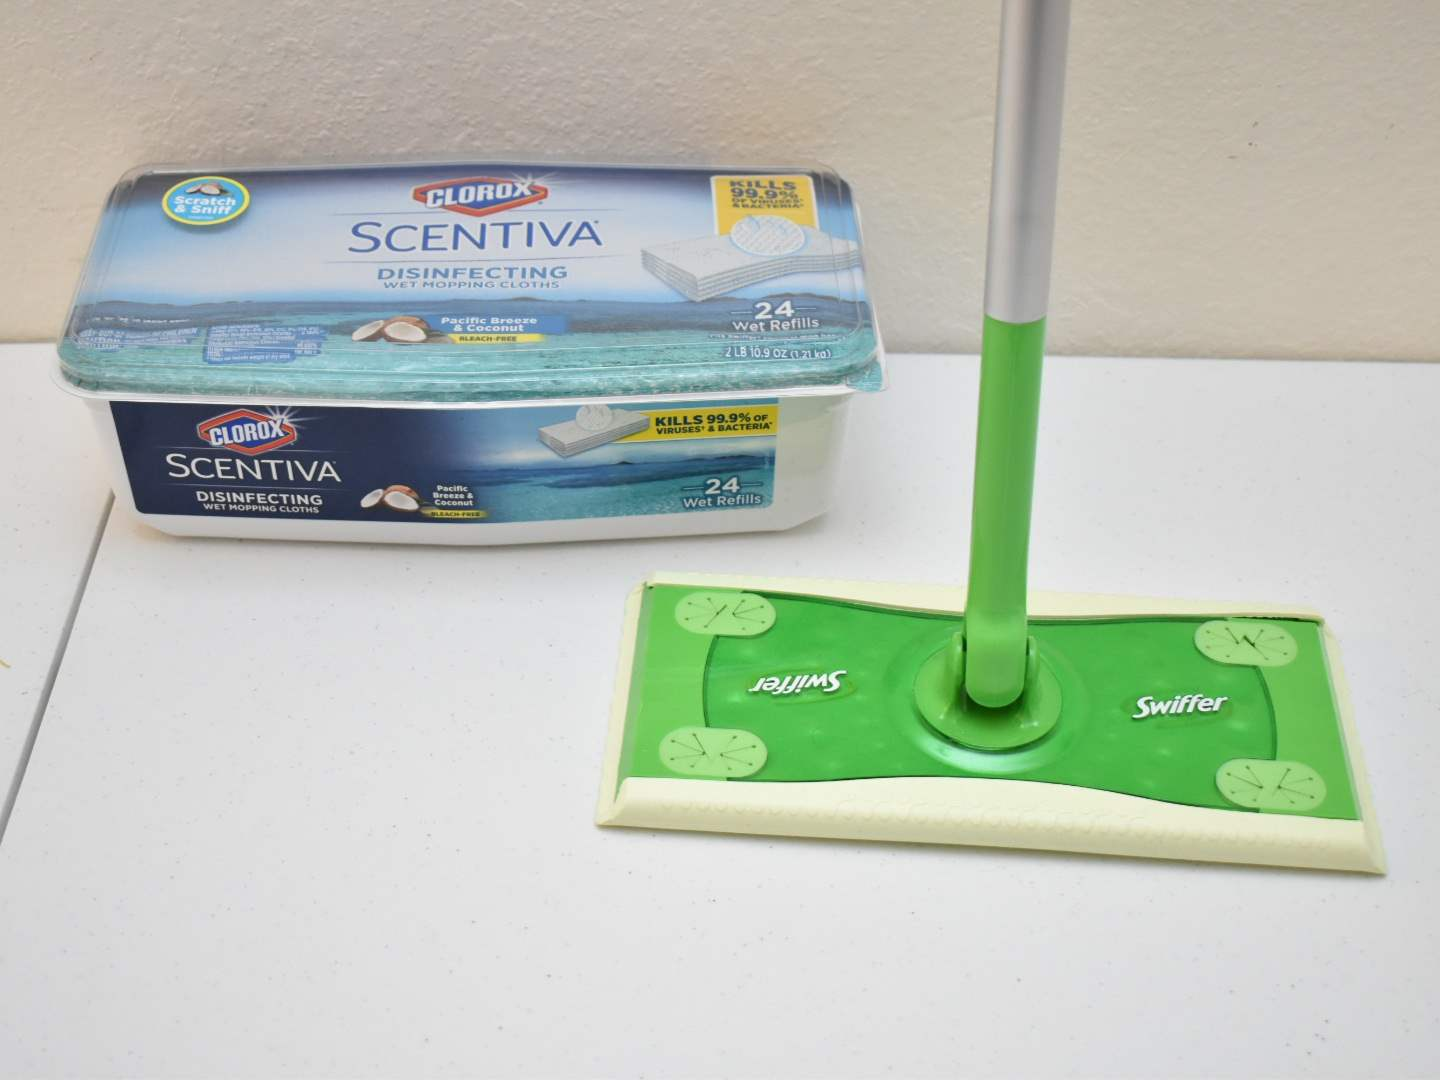 Swiffer with NEW Pack of Clorox Mopping Cloths